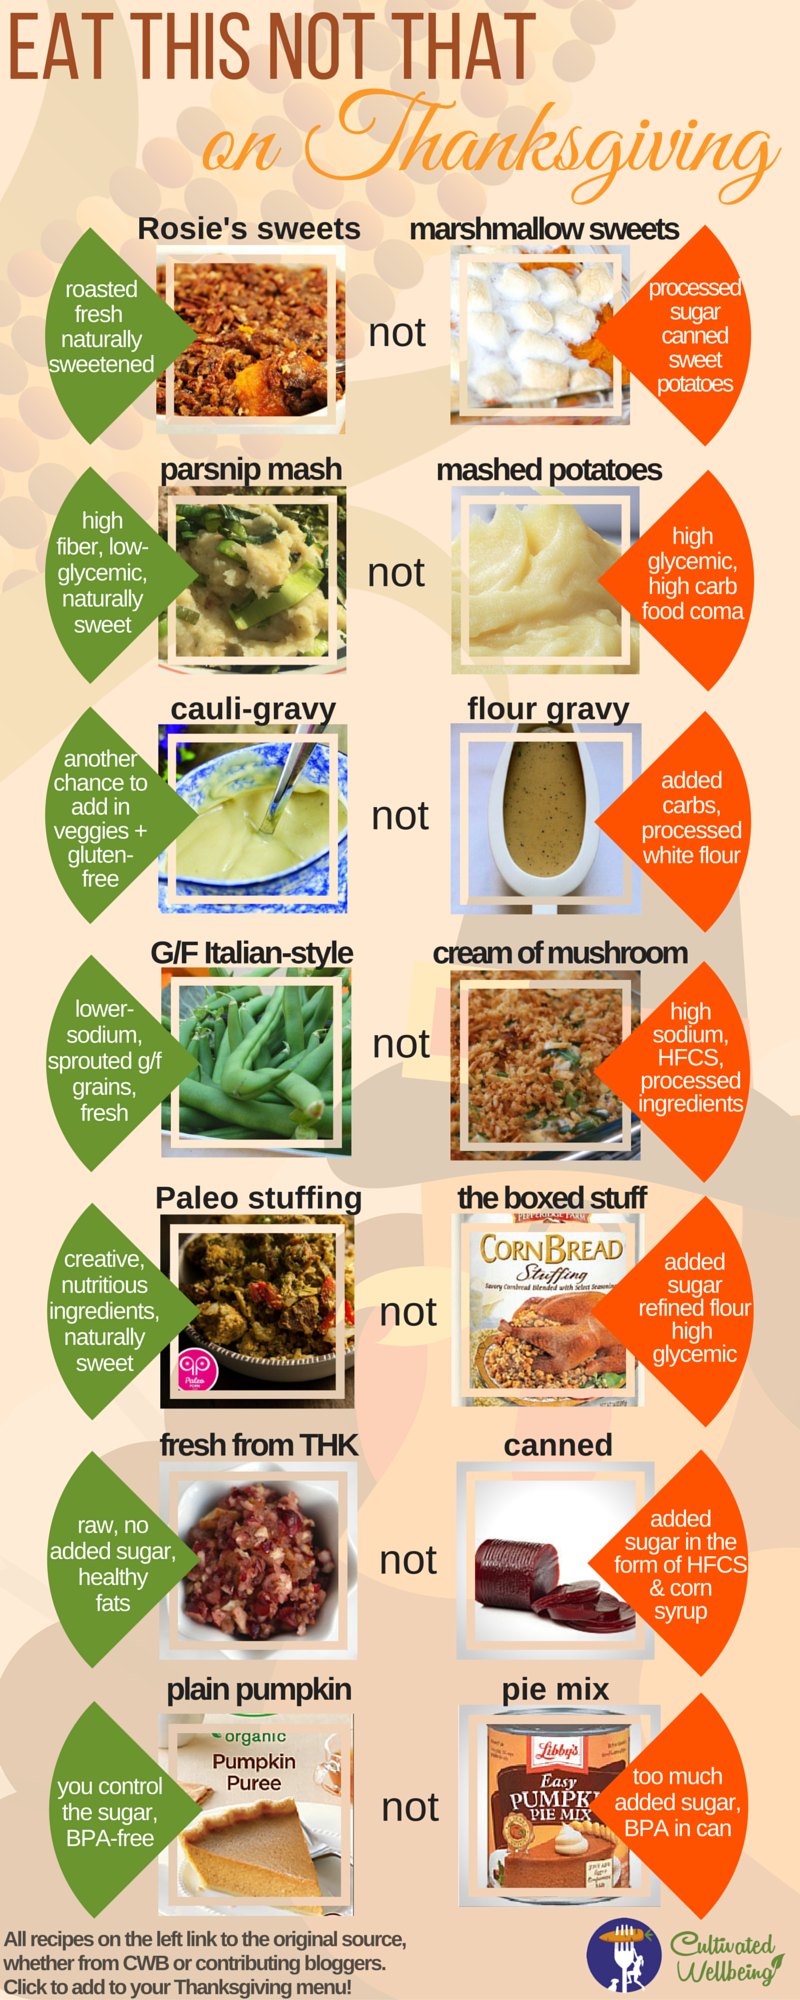 Thanksgiving Food Guide: Eat This, NotThat